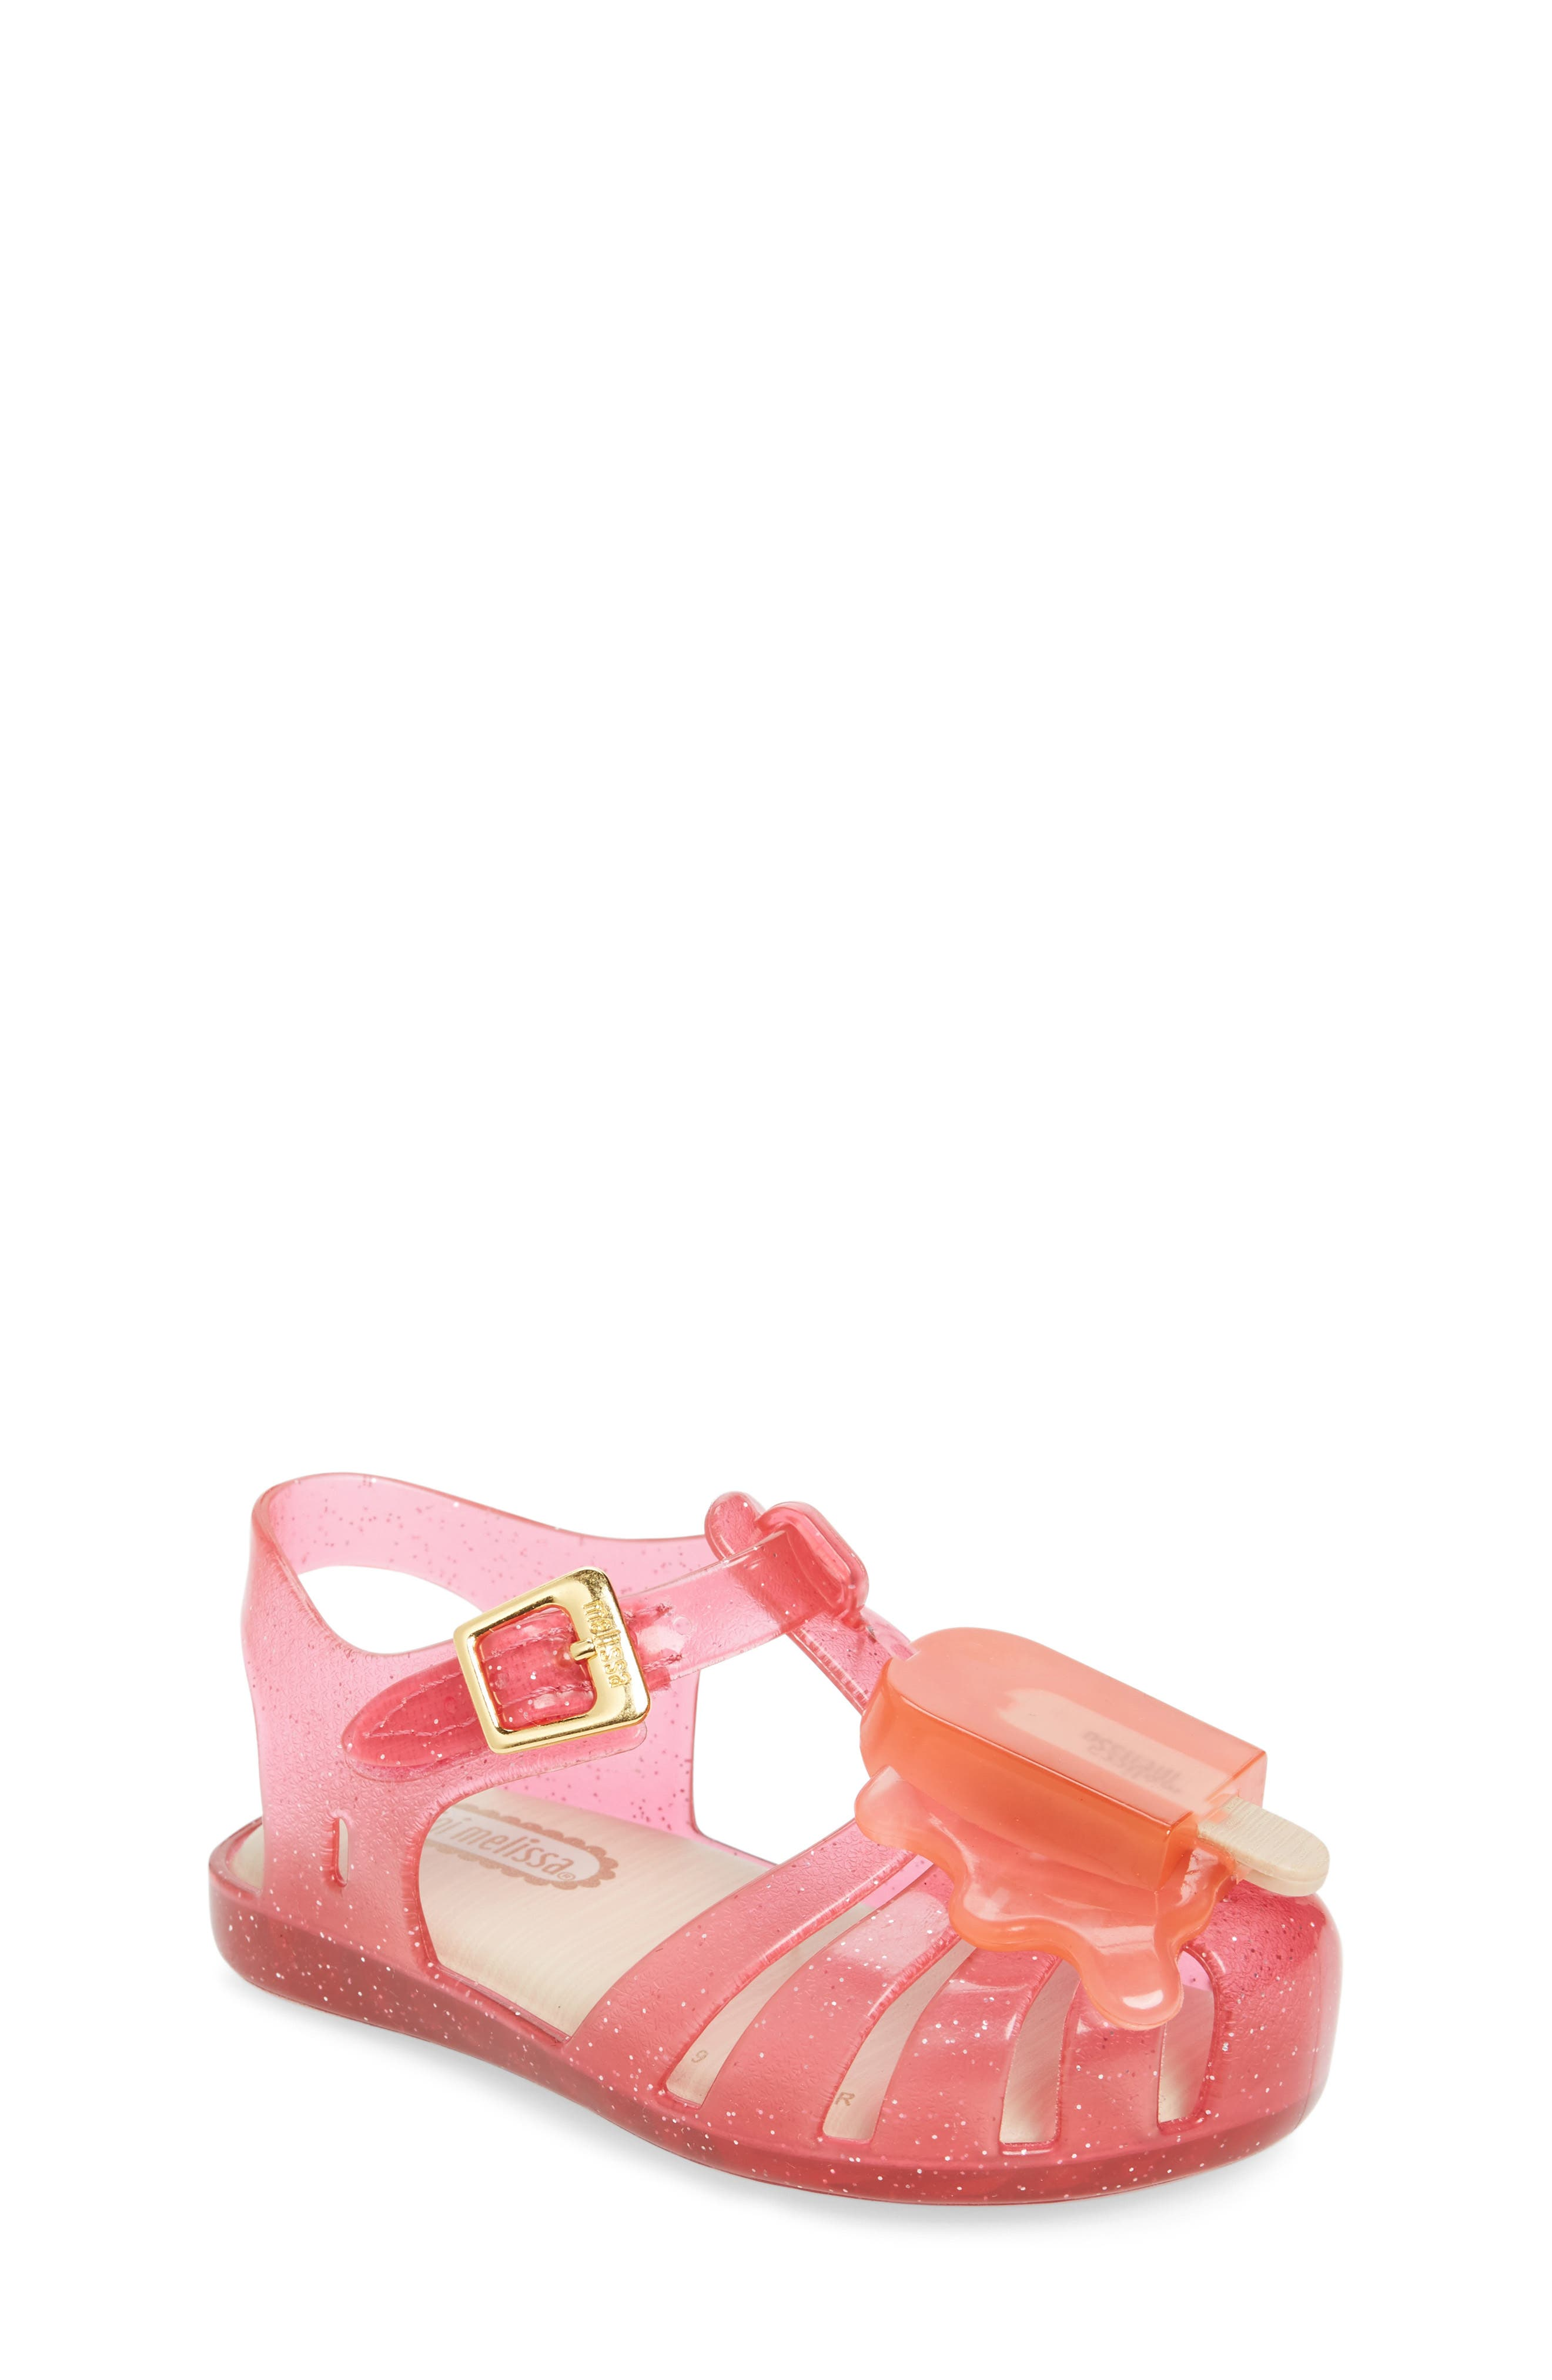 Alternate Image 1 Selected - Mini Melissa 'Aranha' Mary Jane Sandal (Walker & Toddler)